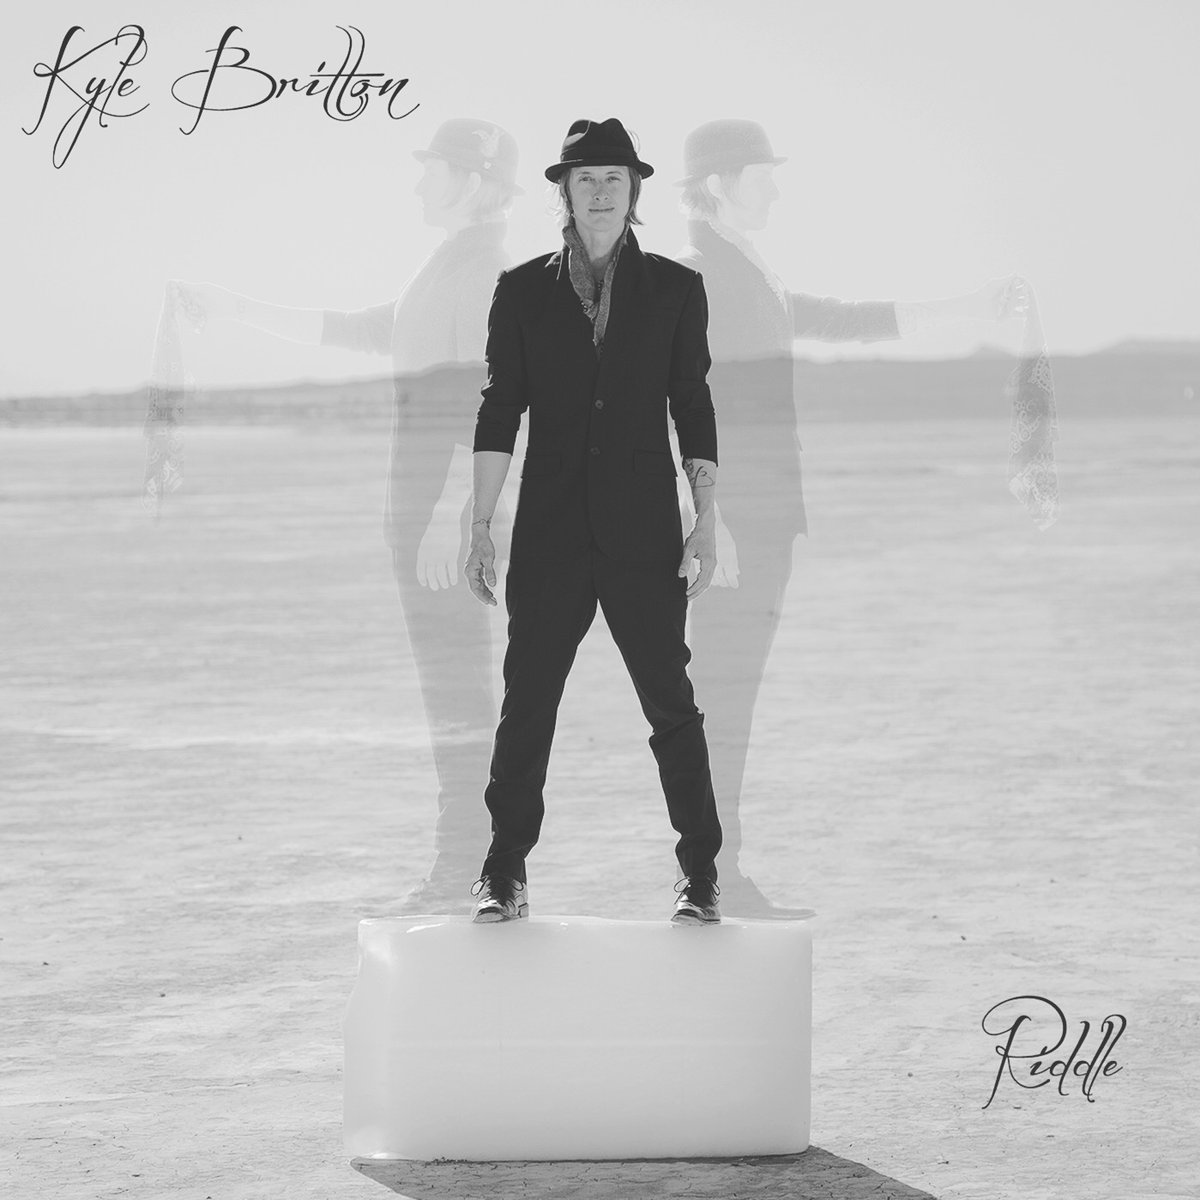 Indie Folk Singer-Songwriter Kyle Britton Releases New Single–EP Riddle Out June 10